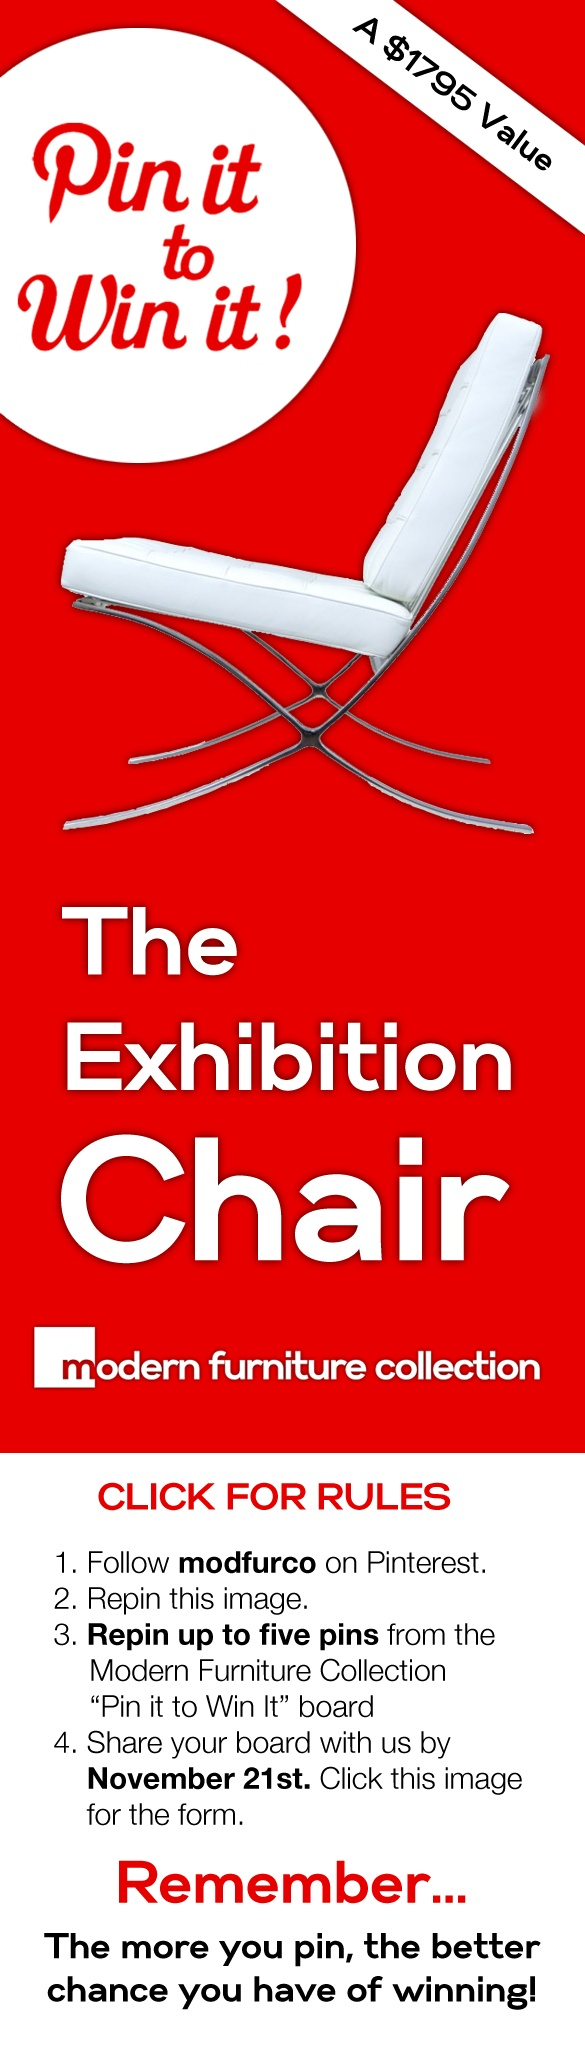 Modern Furniture Collection is giving away a classic Exhibition Chair! All you have to do is pin. #modernfurniture #barcelonachair #contest #pinittowinit #pintowin